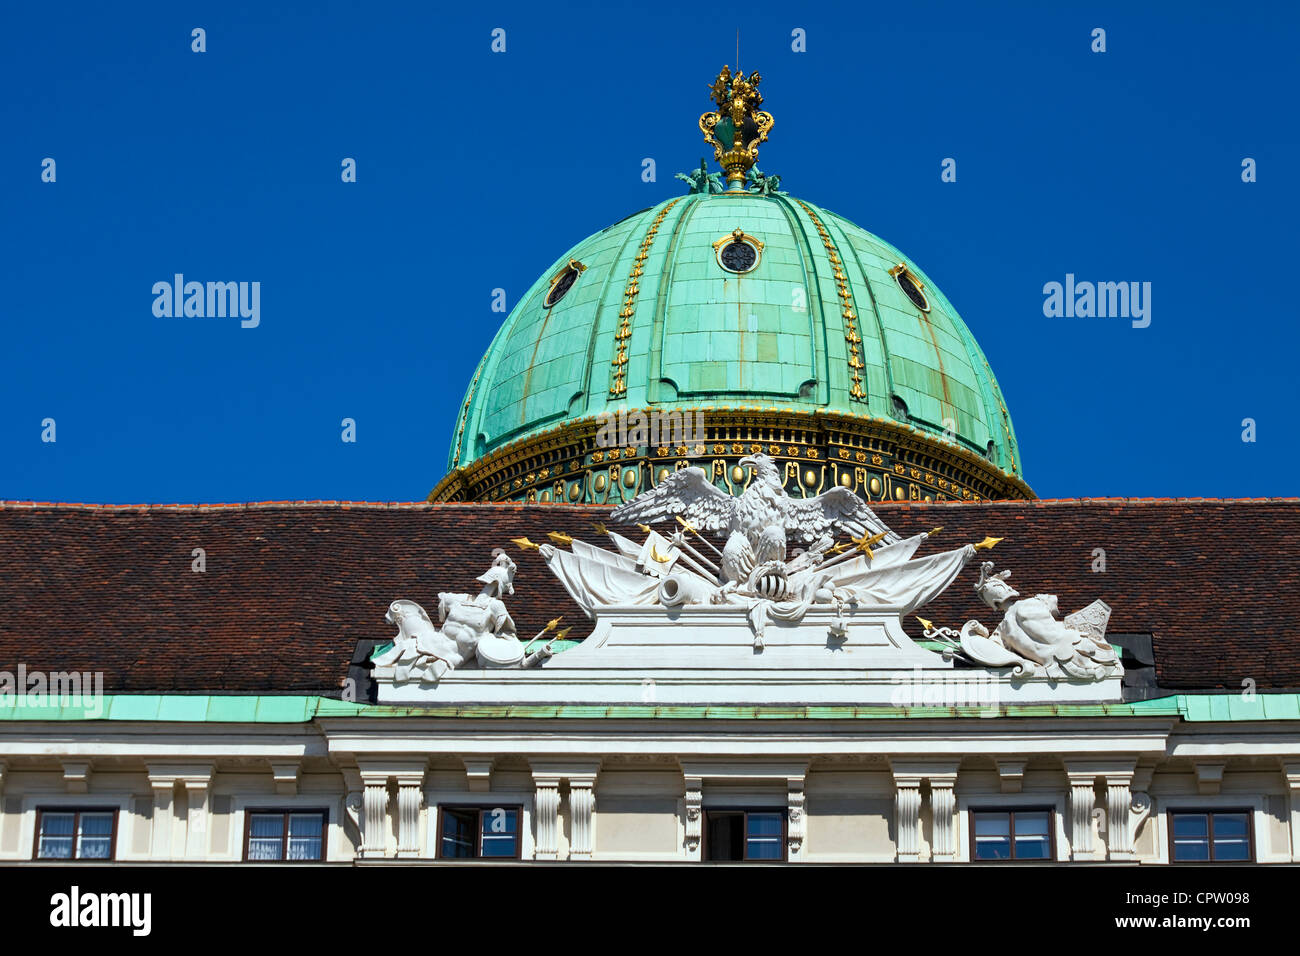 Dome and Decoration over the Michaeler Gate of the Hofburg Palace in Vienna - Stock Image